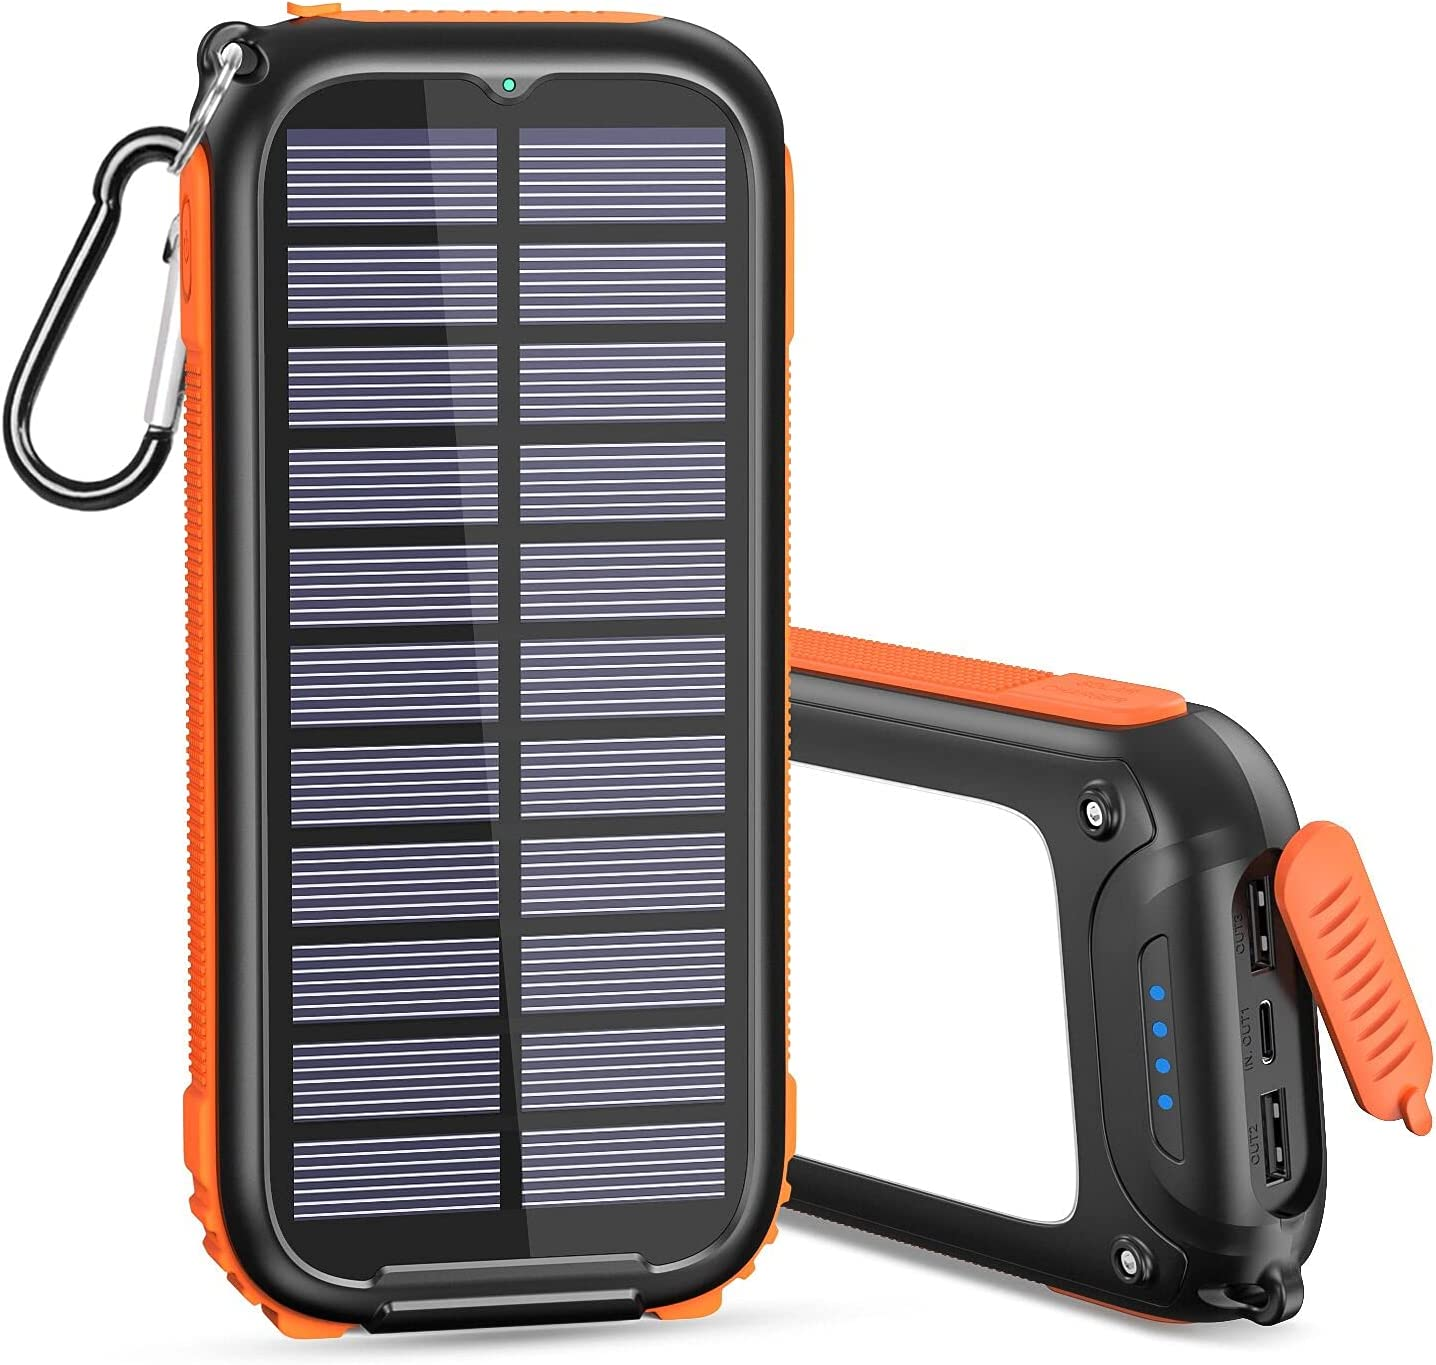 Solar Charger 26800mAh Power Bank Portable Battery Charger, Orange